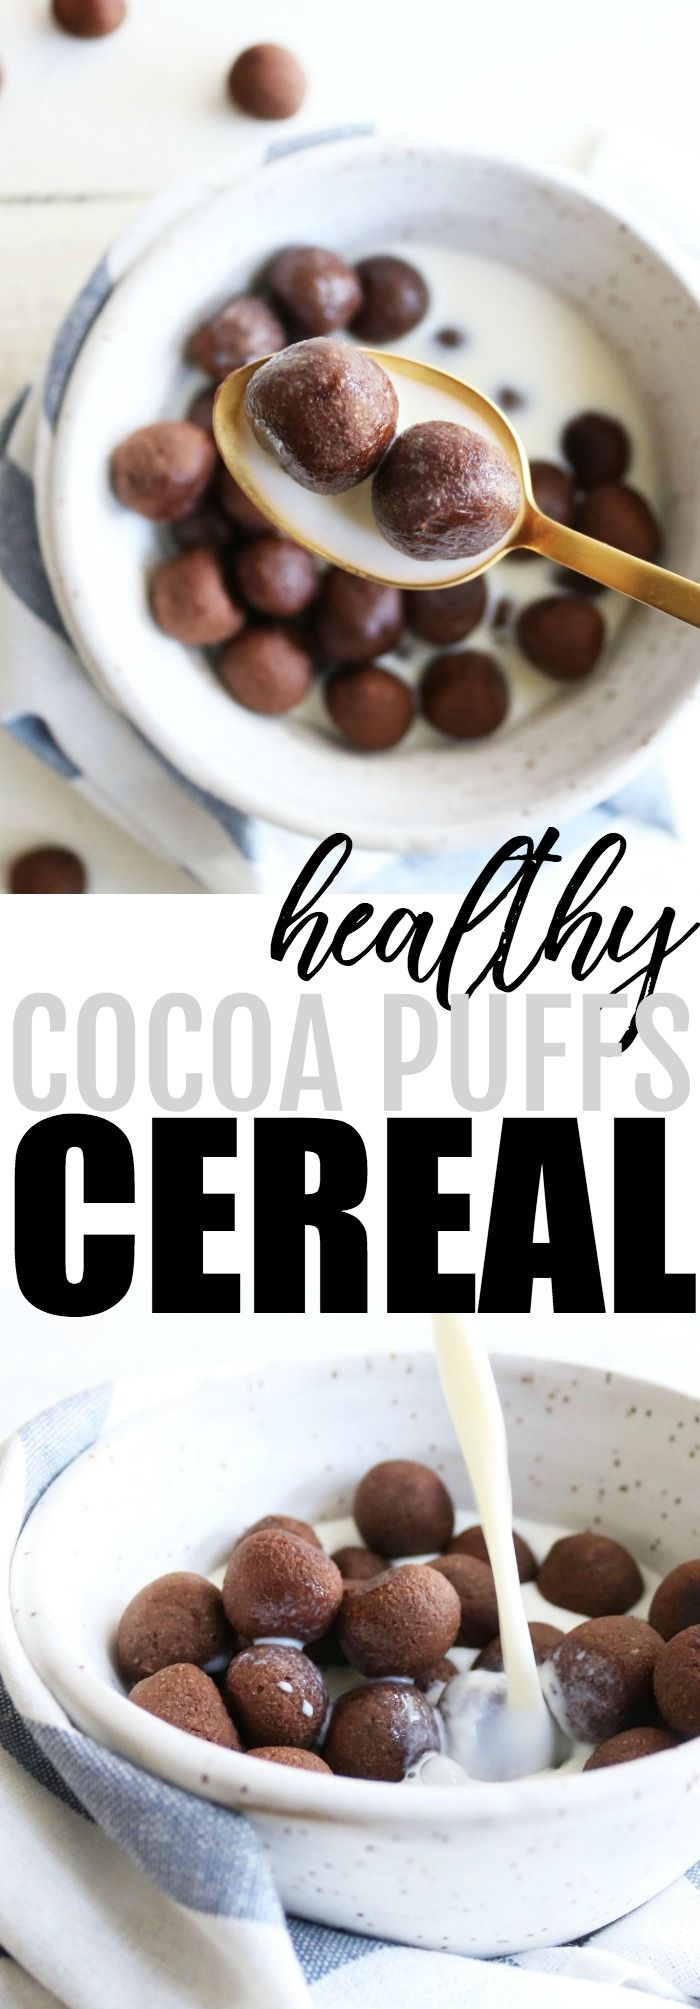 Chocolate for breakfast?! I'm in!! Try these healthy and homemade cocoa puffs cereal for a delicious way to start your day! low carb + gluten free + paleo friendly :) thetoastedpinenut.com